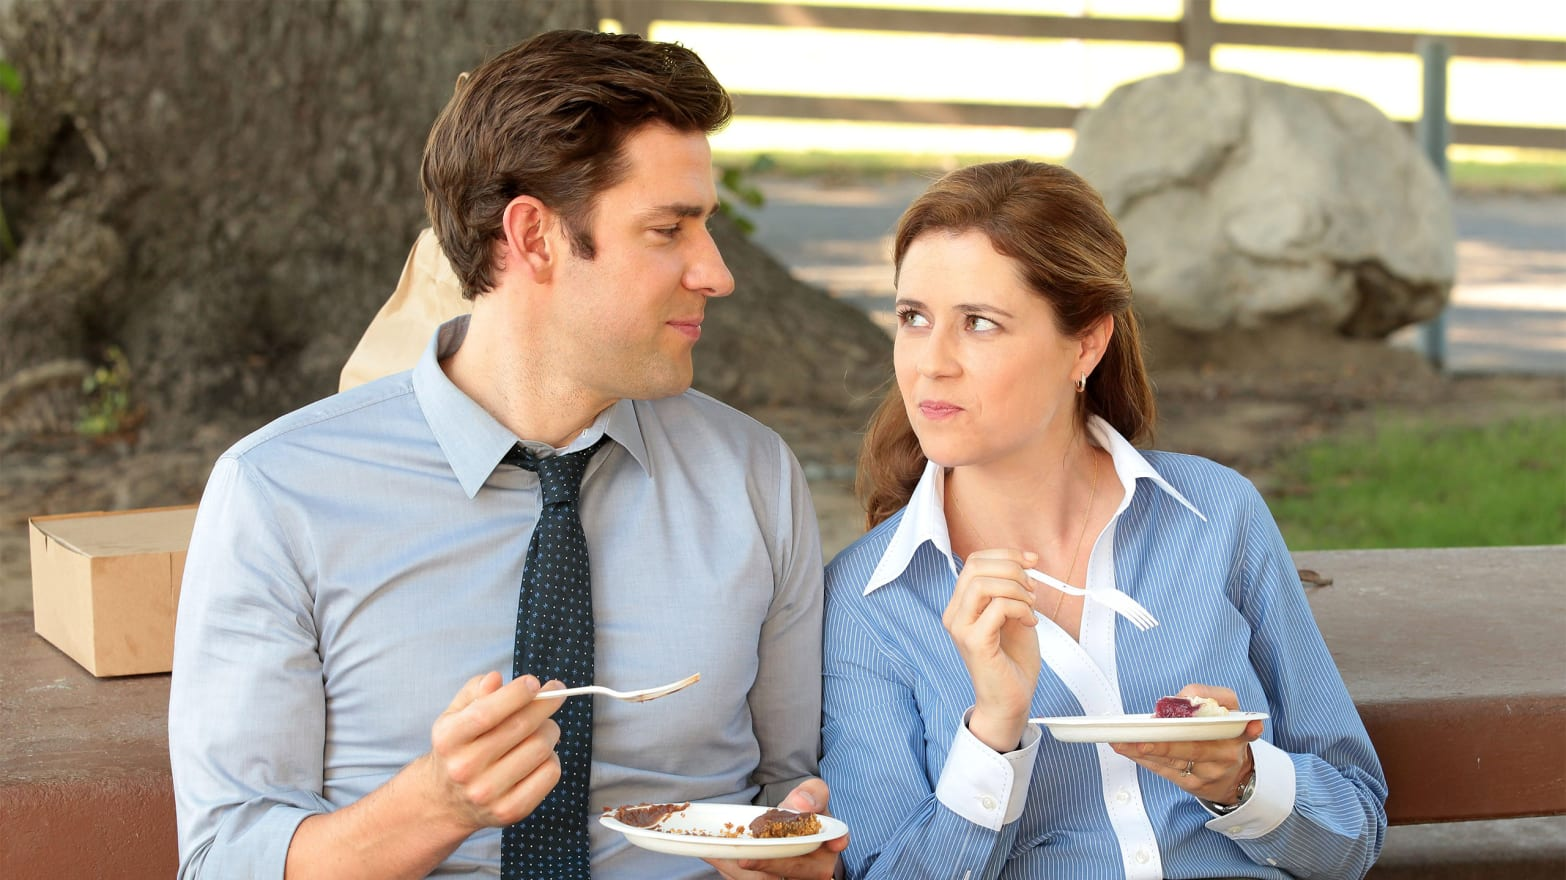 John Krasinski: Sorry 'Office' Fans, Jenna Fischer and I Were Not